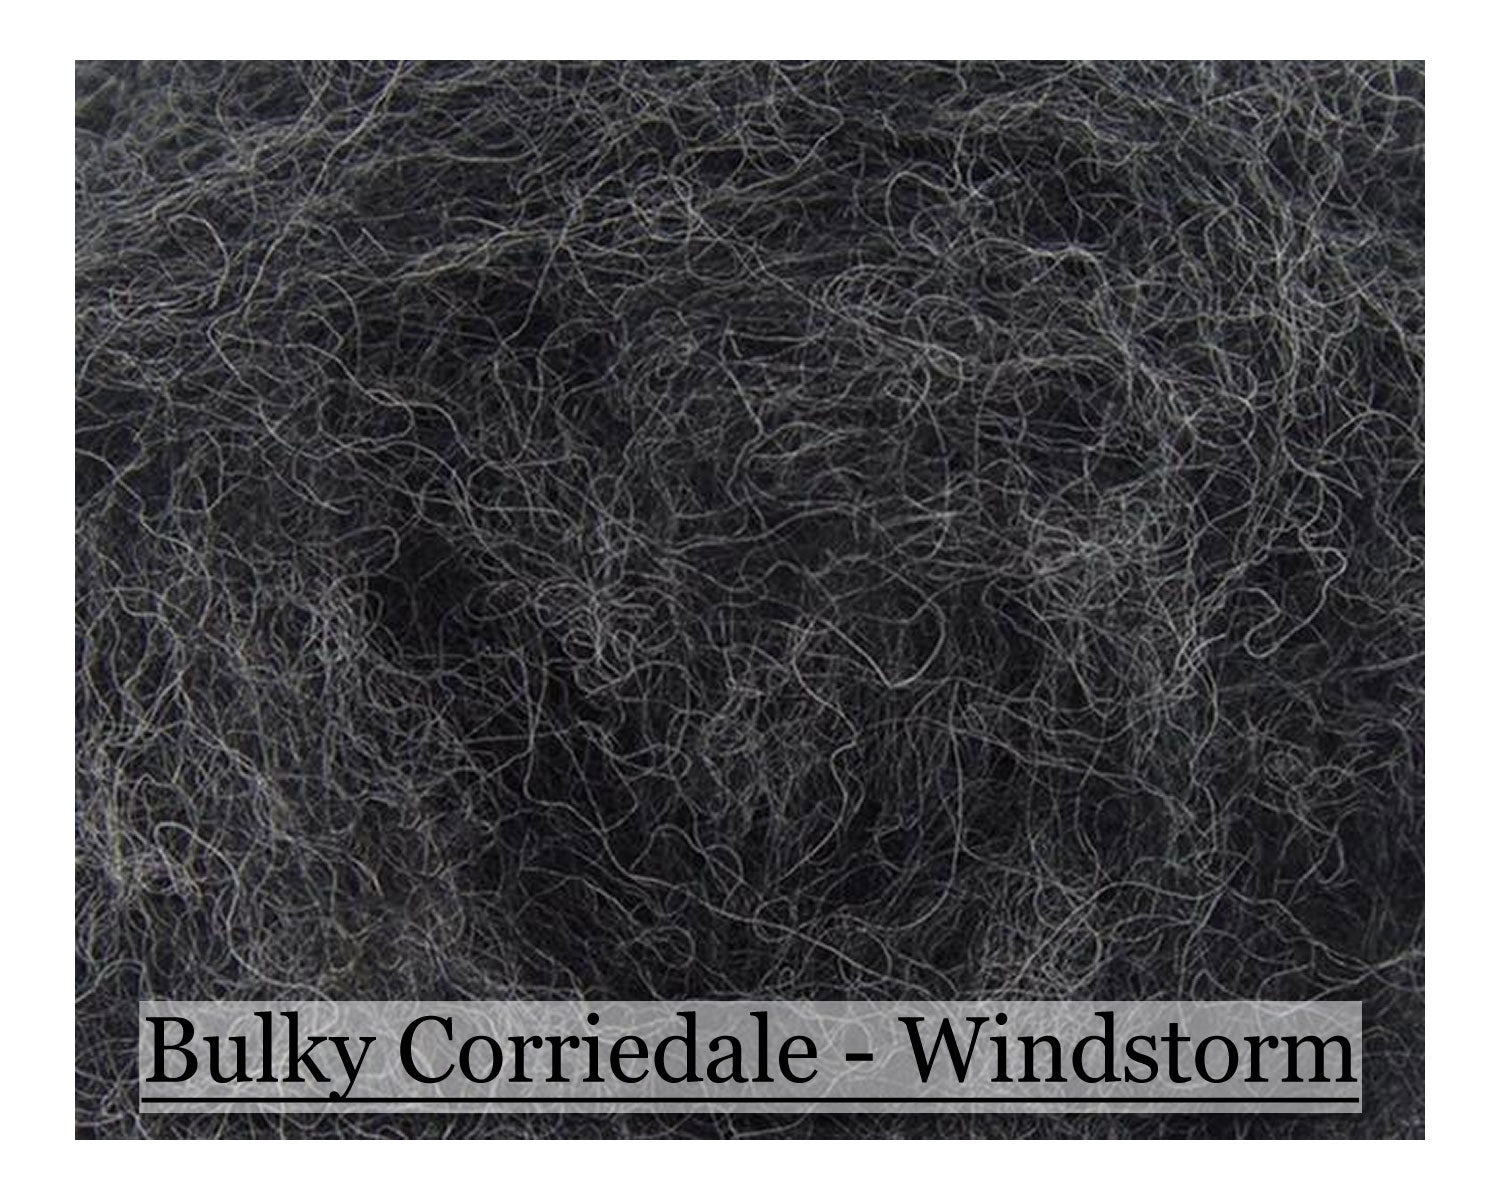 Windstorm - Bulky Corriedale Wool - Shades of Grey Series - 16oz